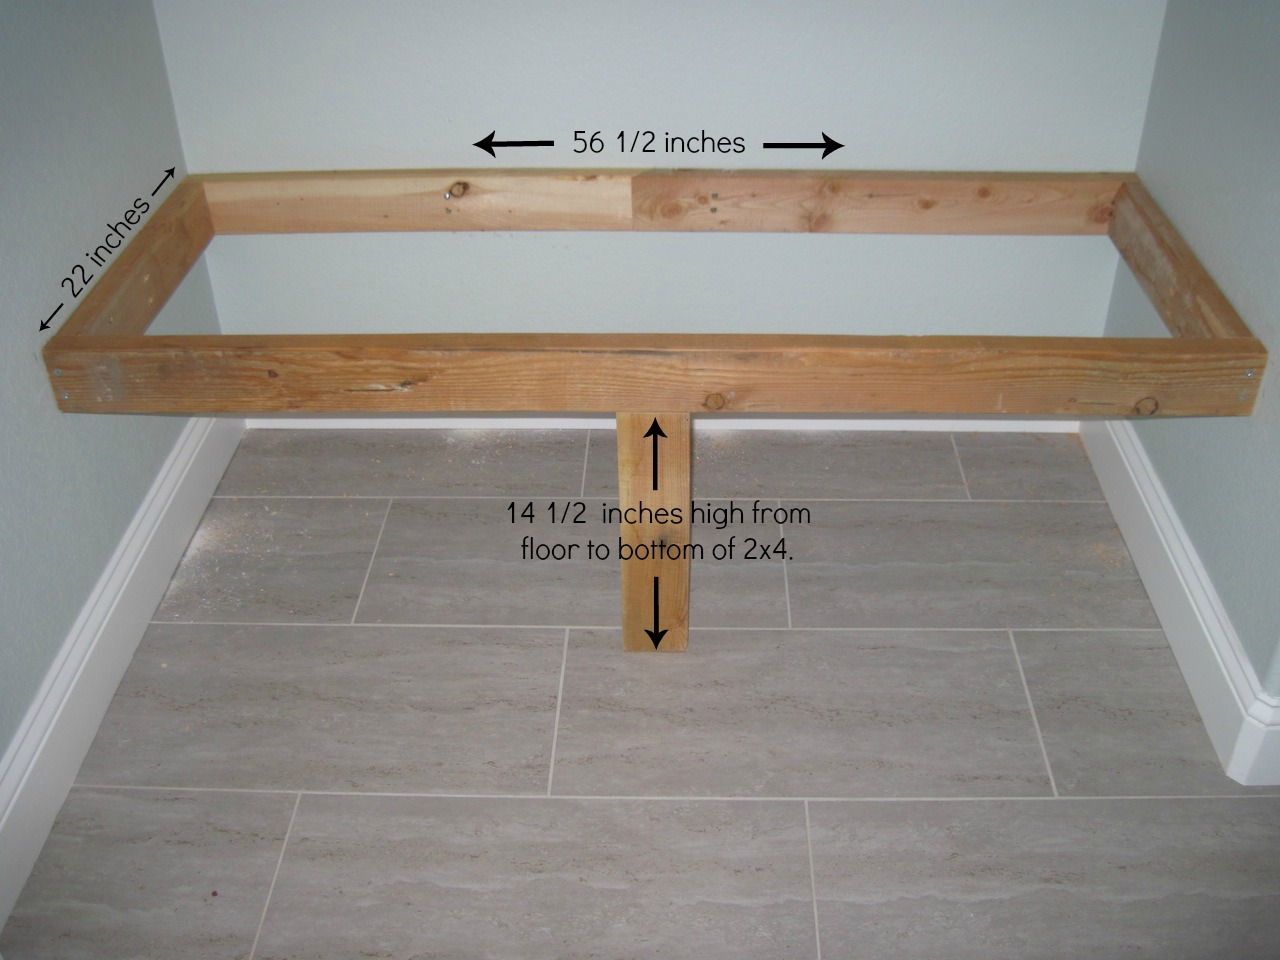 Pdf mud room plans joy studio design gallery best design Mud room benches